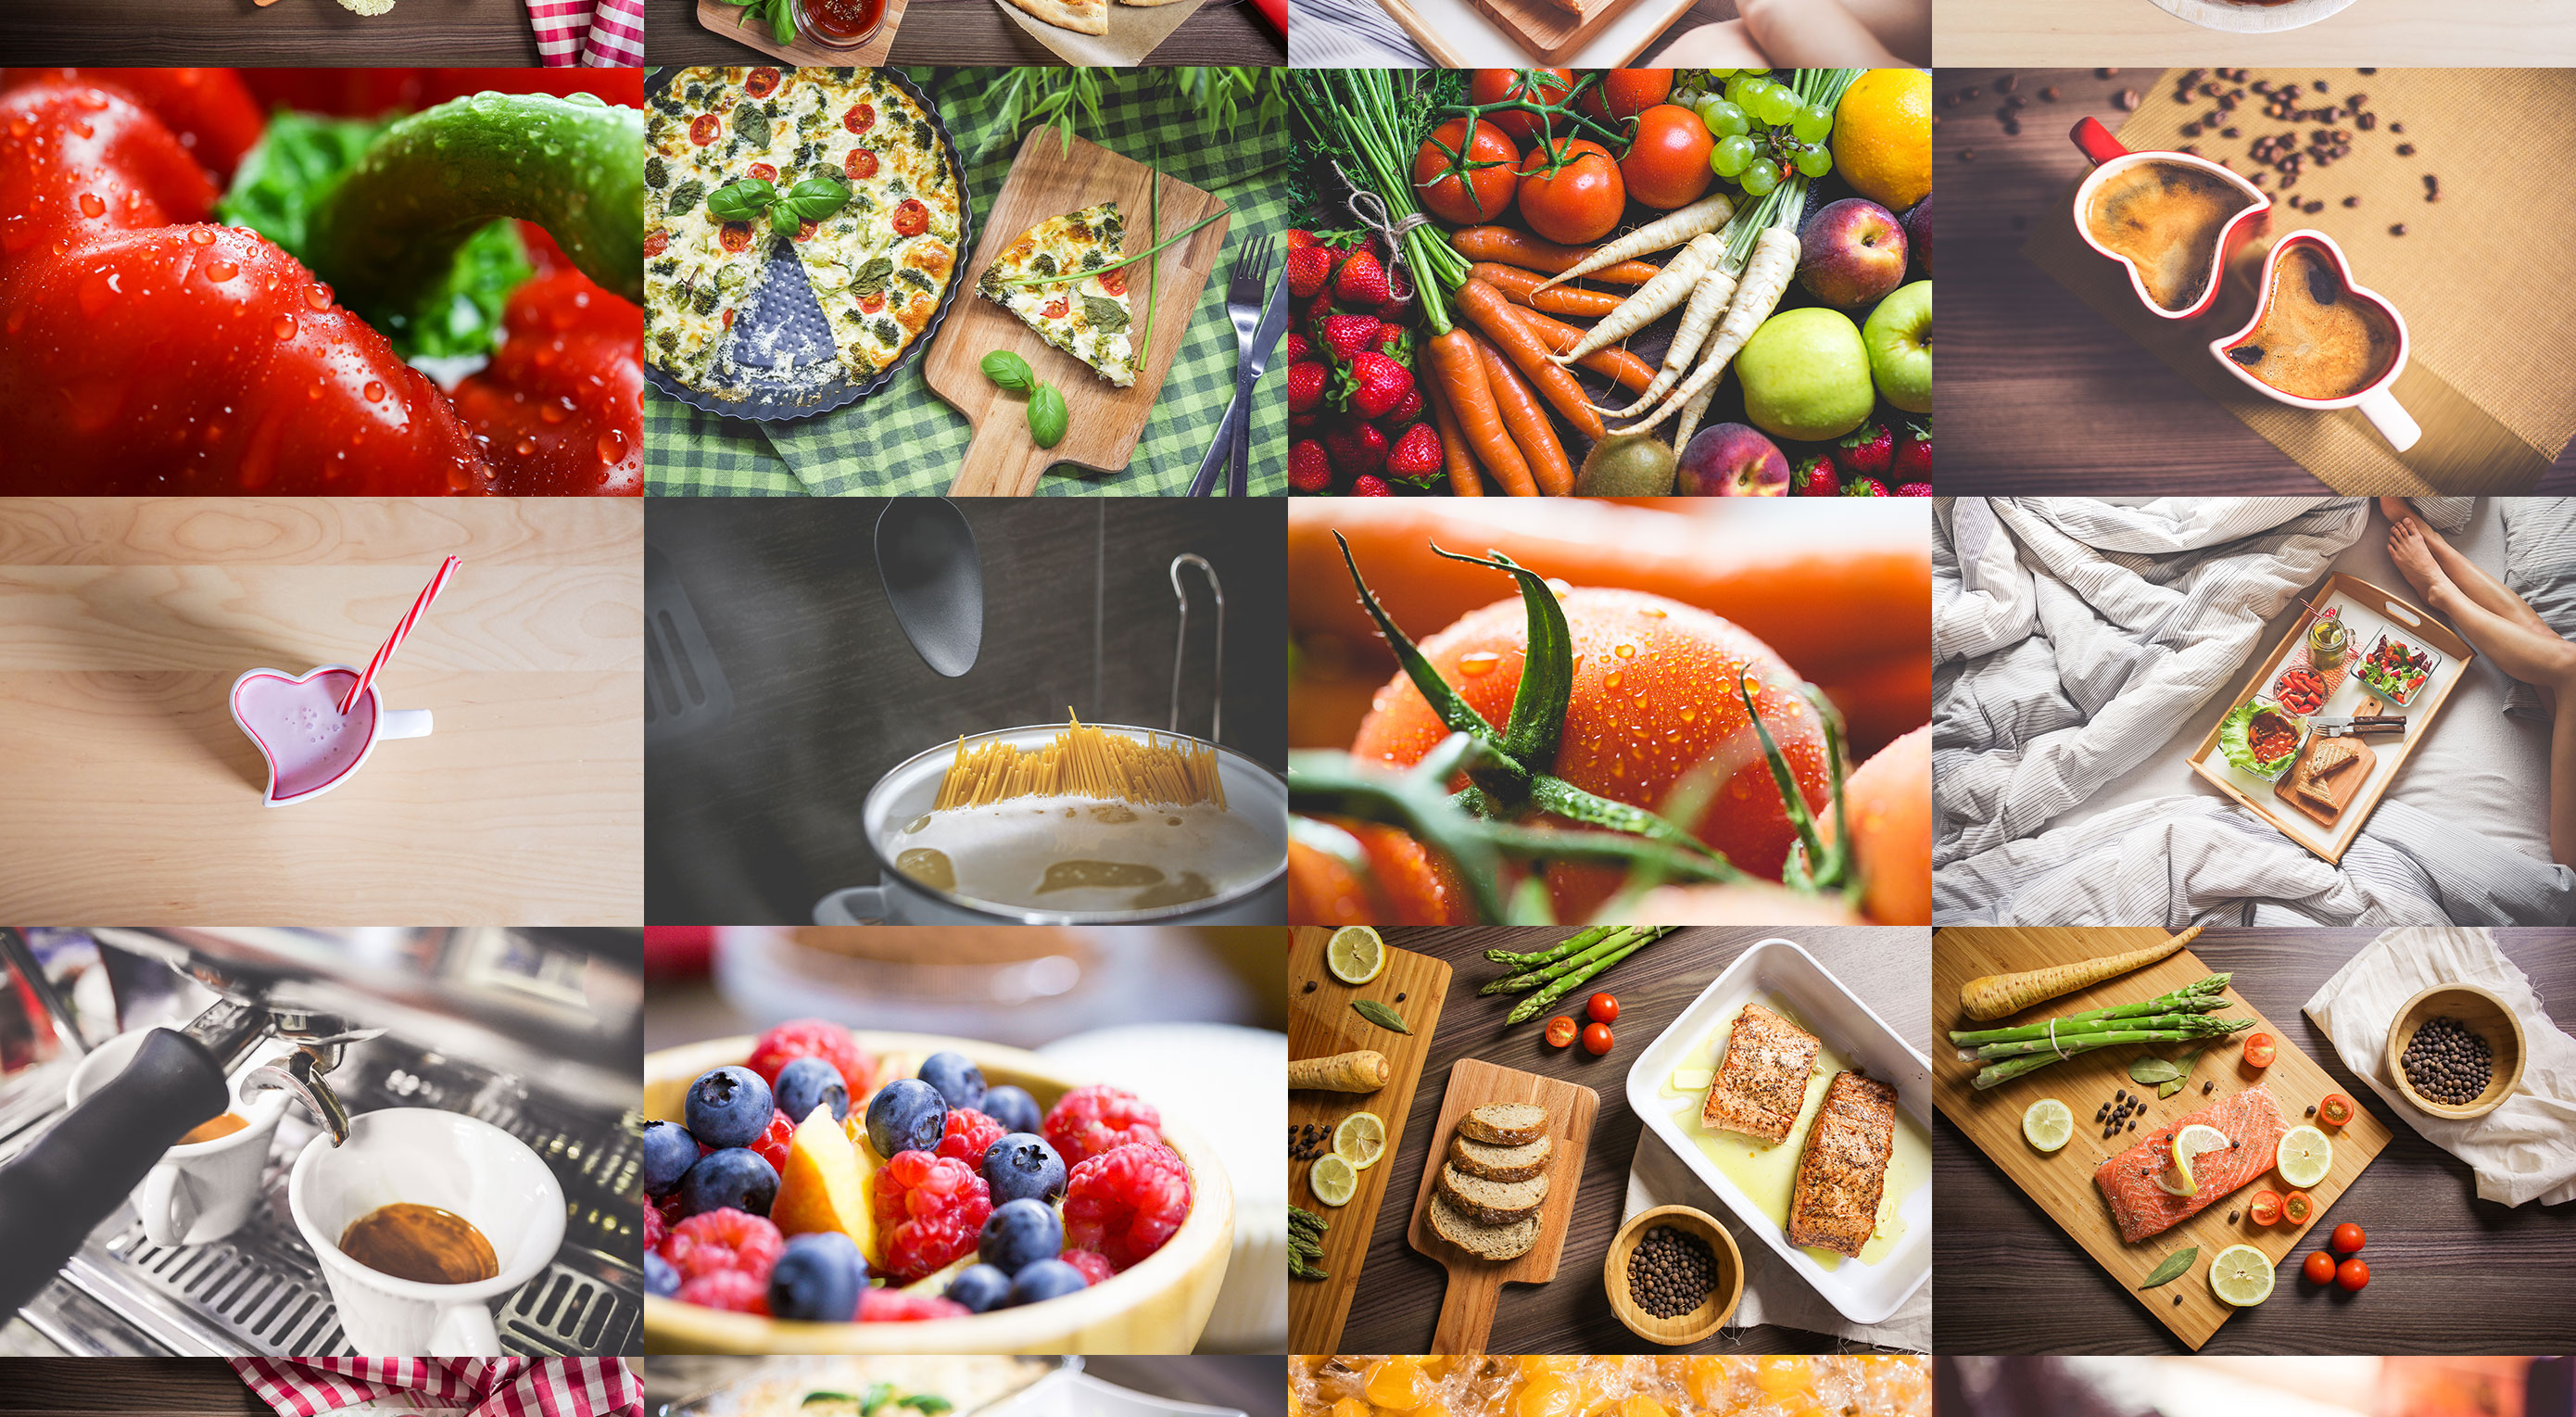 Free download: 20 food images from PicJumbo